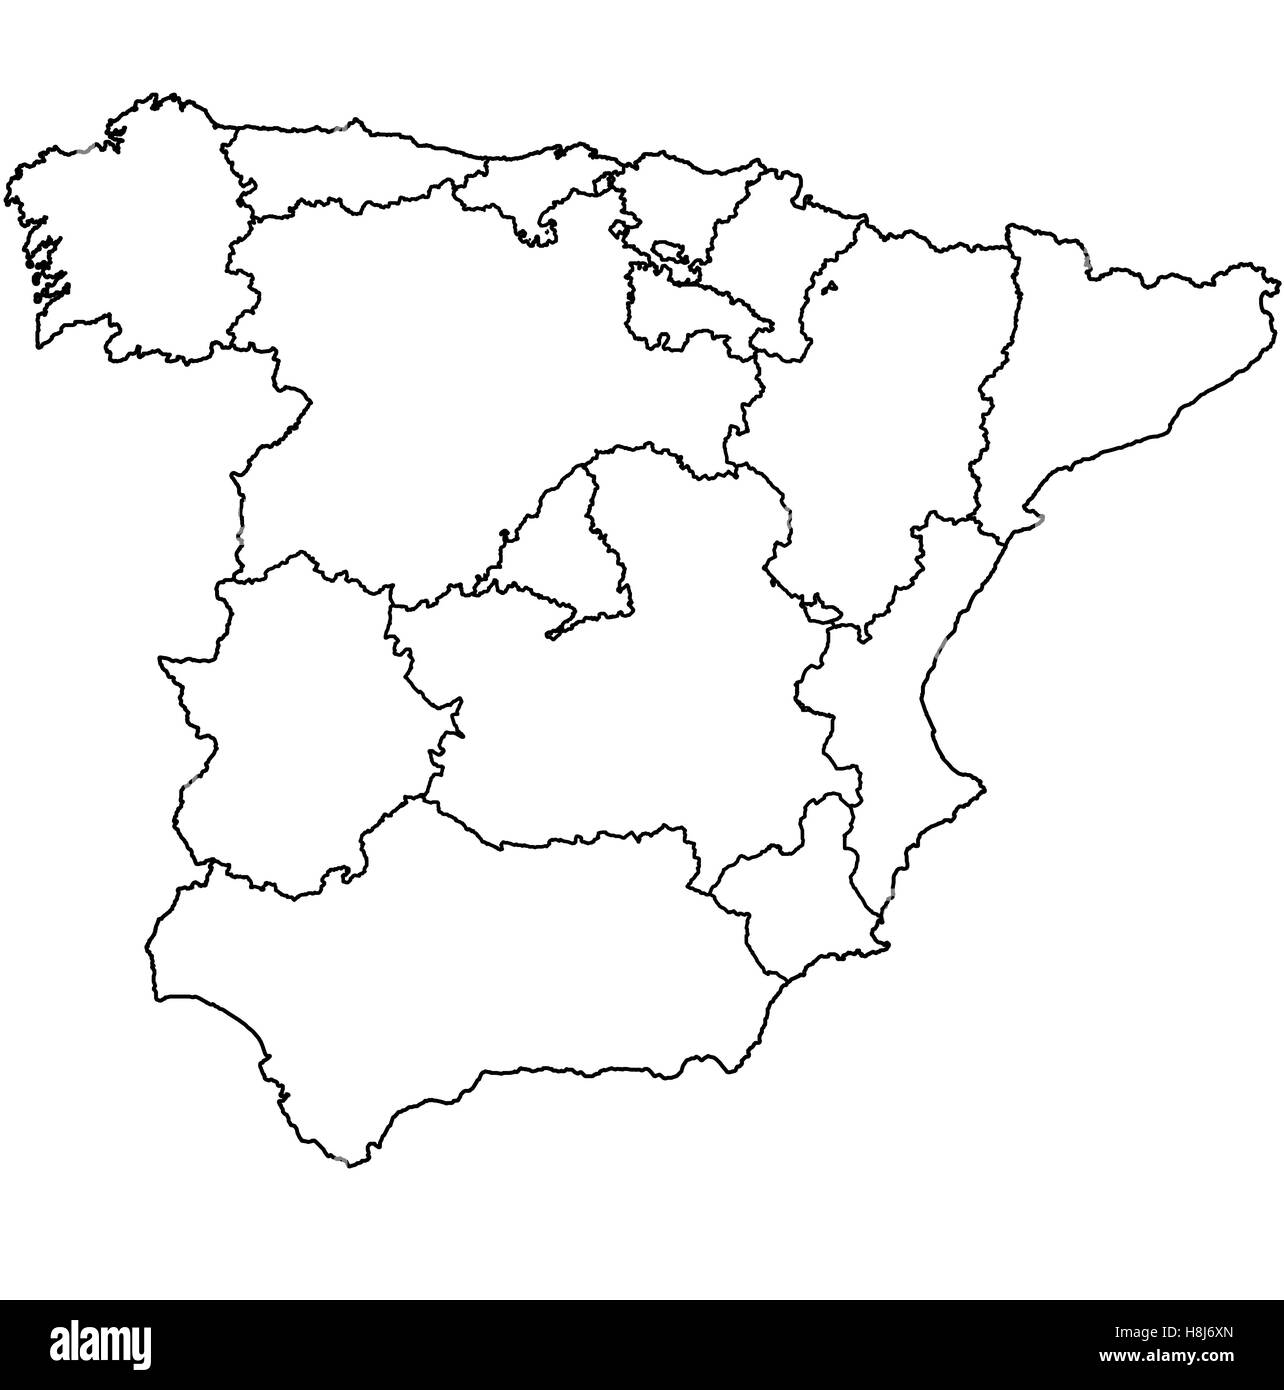 Map Madrid Region Spain Black and White Stock Photos & Images   Alamy